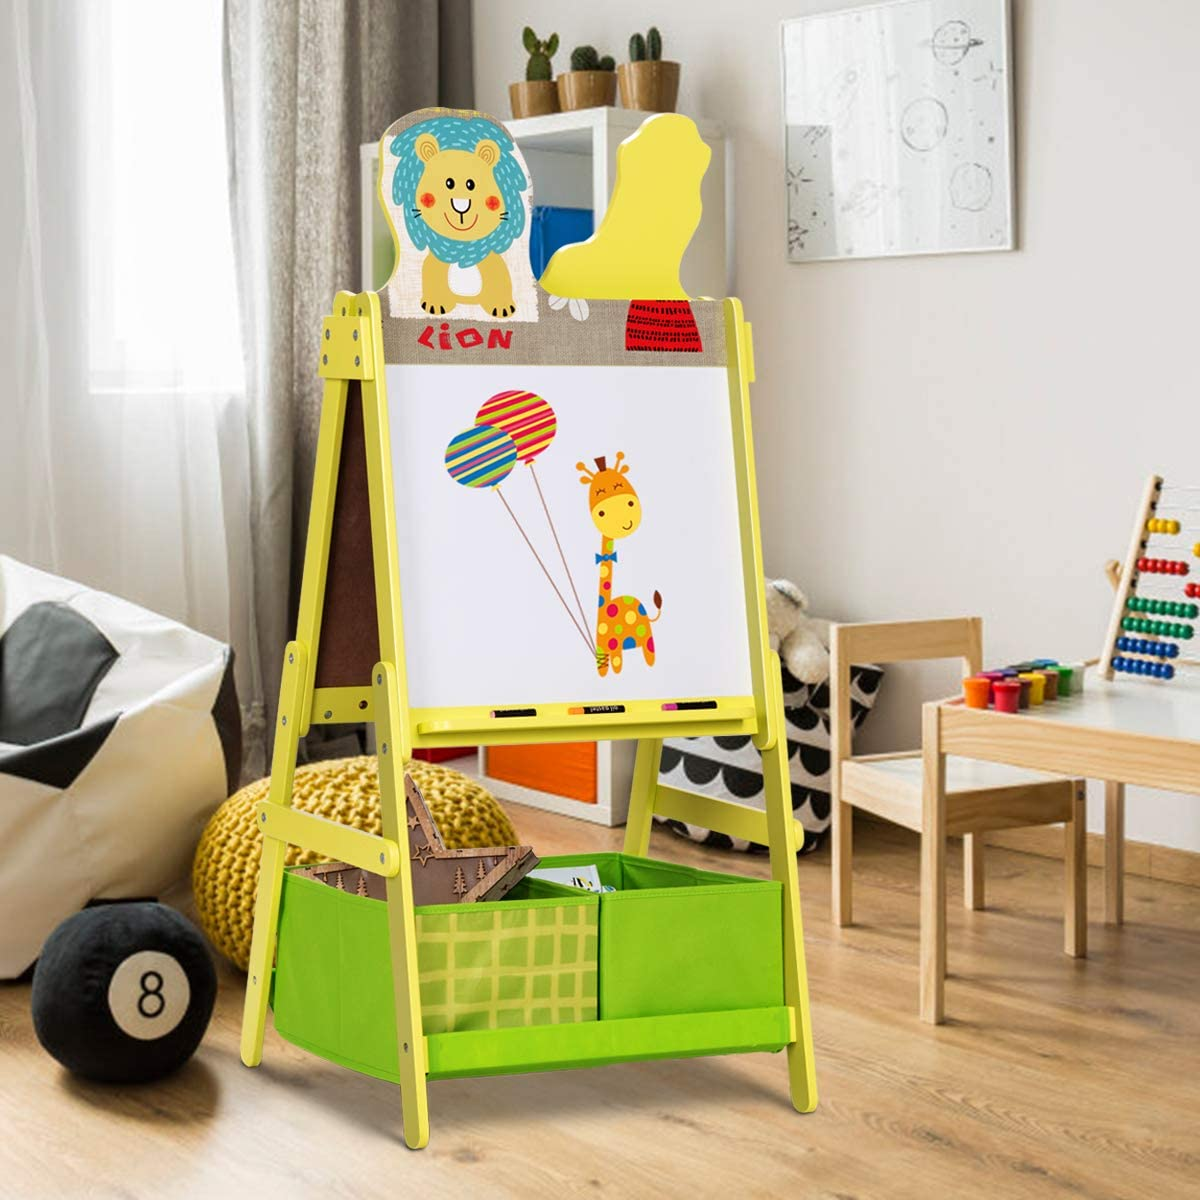 Costzon Kids Art Easel, 2 in 1 Magnetic & Chalk Double Sided Board Art Easel, A-Frame Painting Easel with Two Storage Bins, Cute Animal Design for Boys & Girls, Green